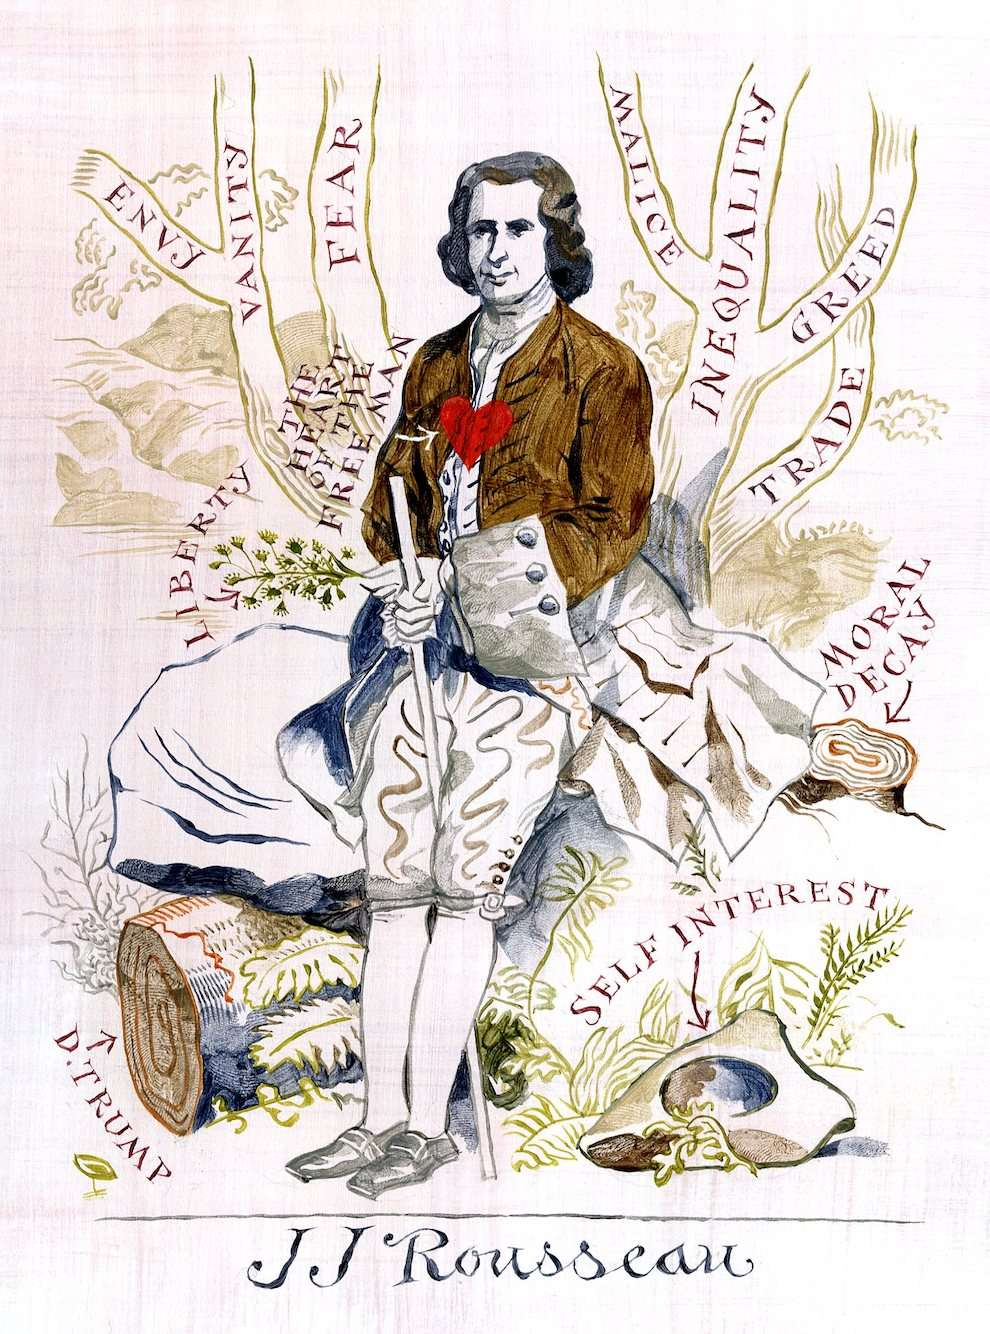 Jeff Fisher, Hand drawn painterly portrait of Jean Jacques Rousseau sitting on a tree